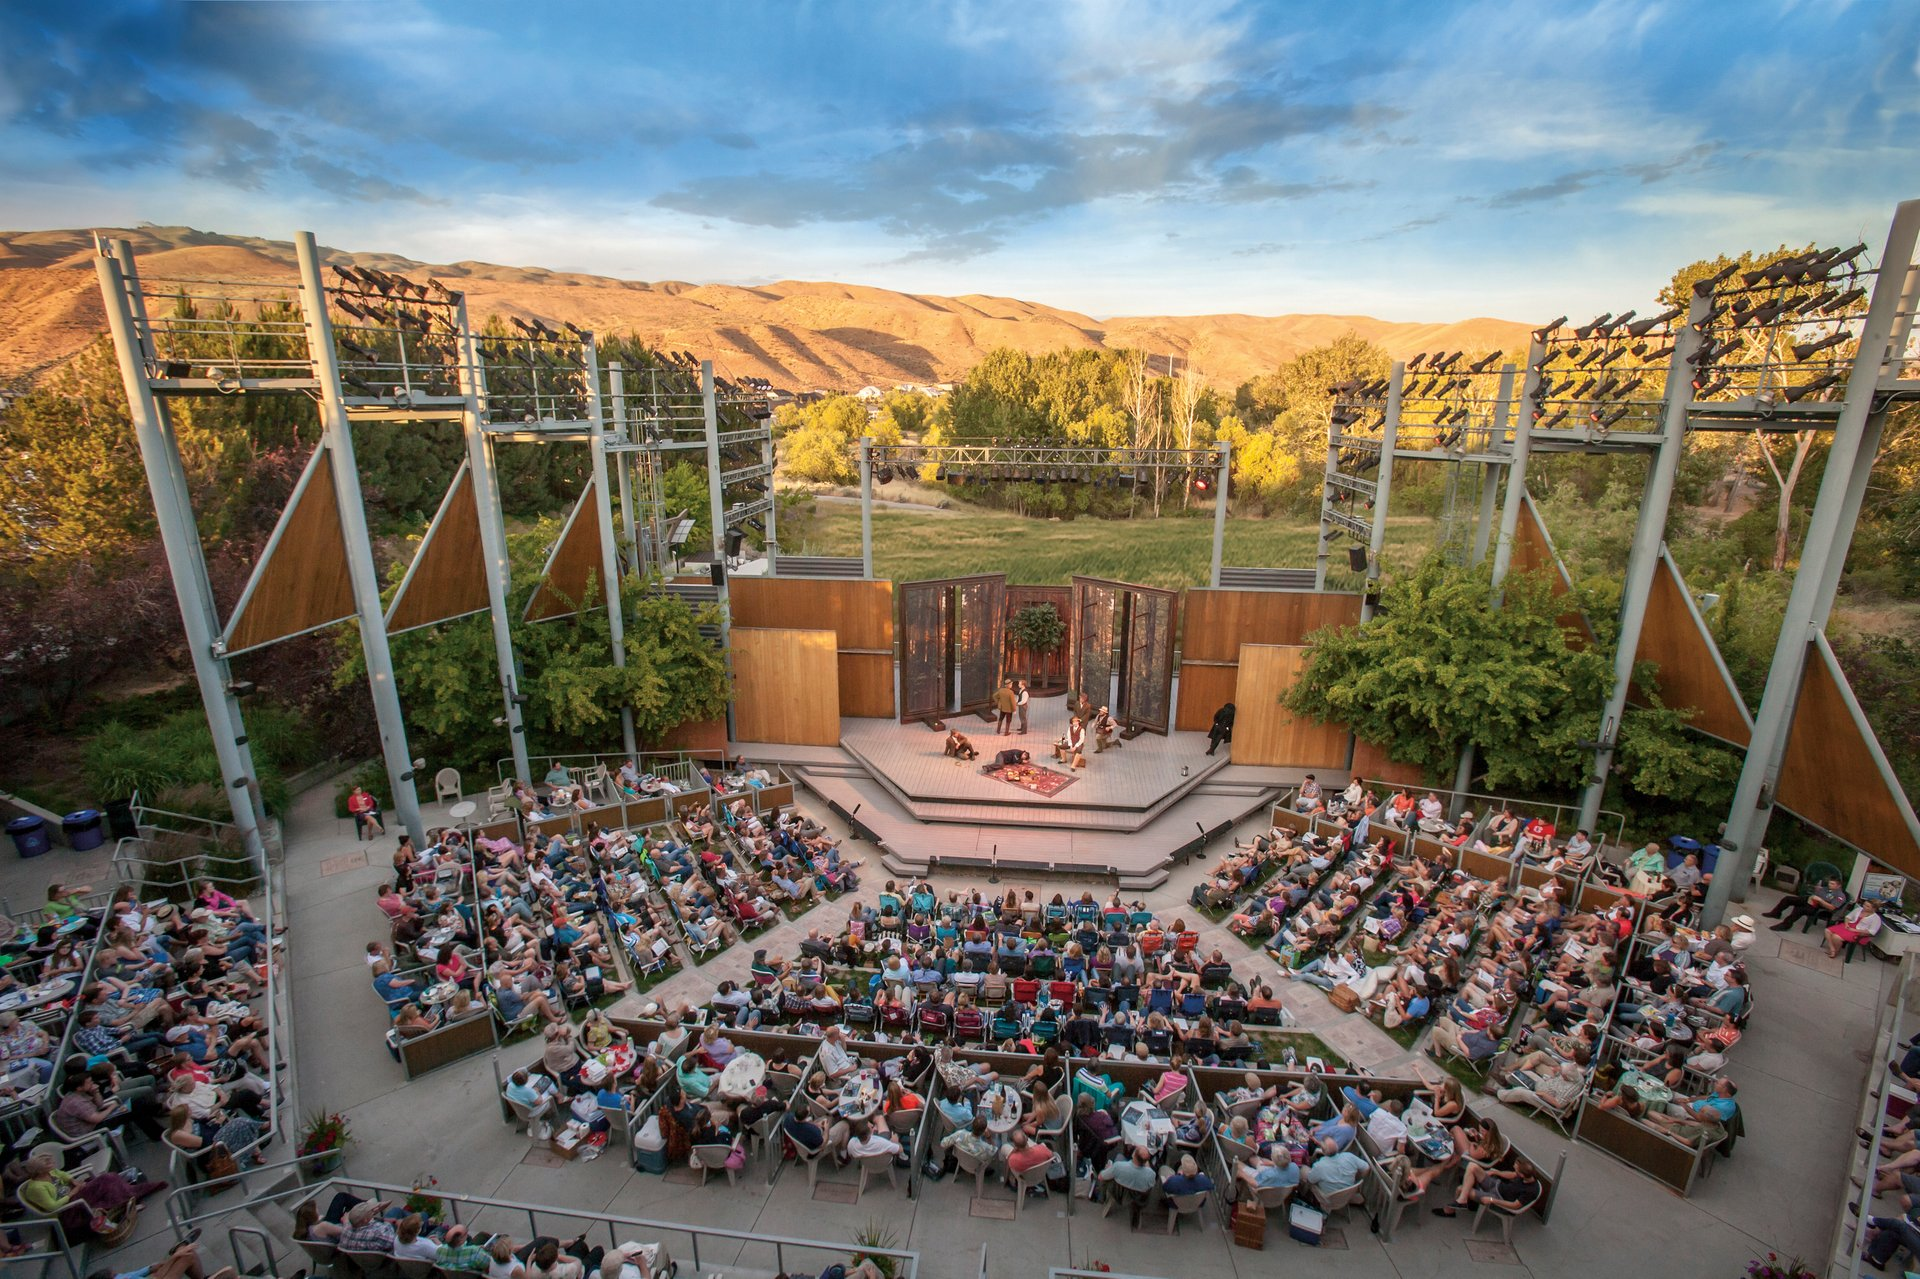 Idaho Shakespeare Festival in Idaho 2020 - Best Time